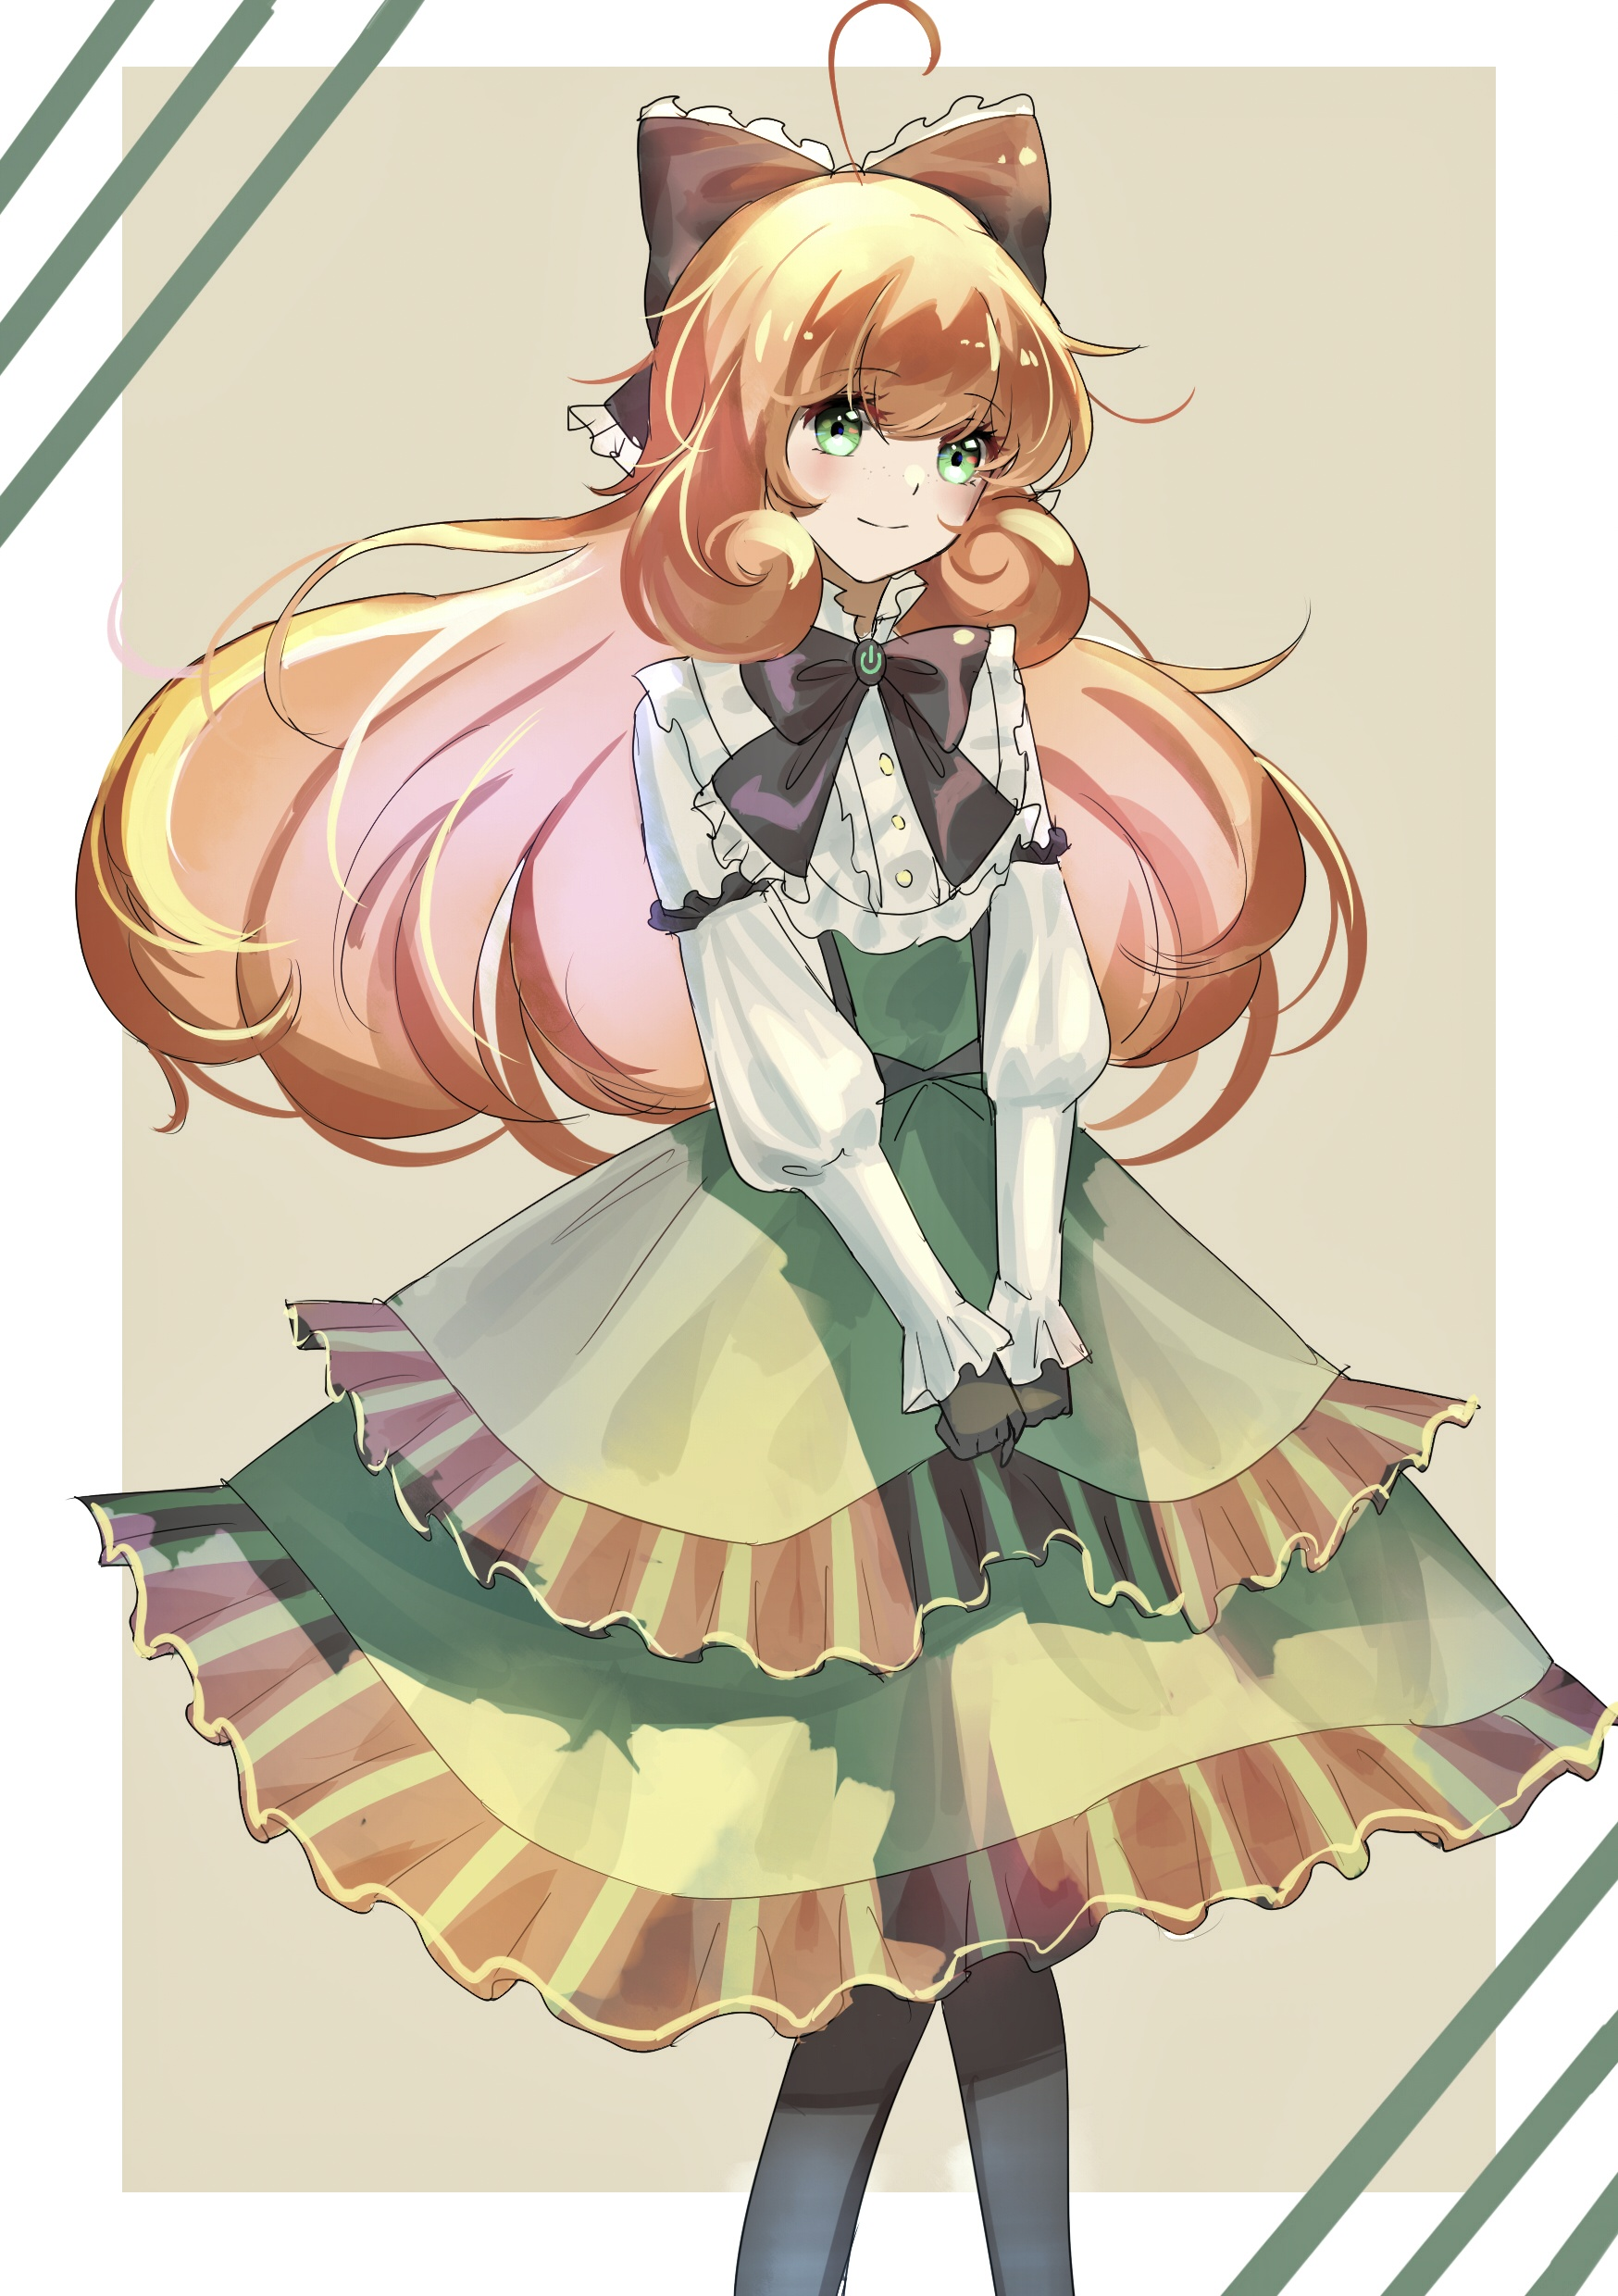 Penny Polendina Rwby Image 2934334 Zerochan Anime Image Board Include the creator's name in the title when submitting content—google image search and this guide are useful if you can't find the source. penny polendina rwby image 2934334